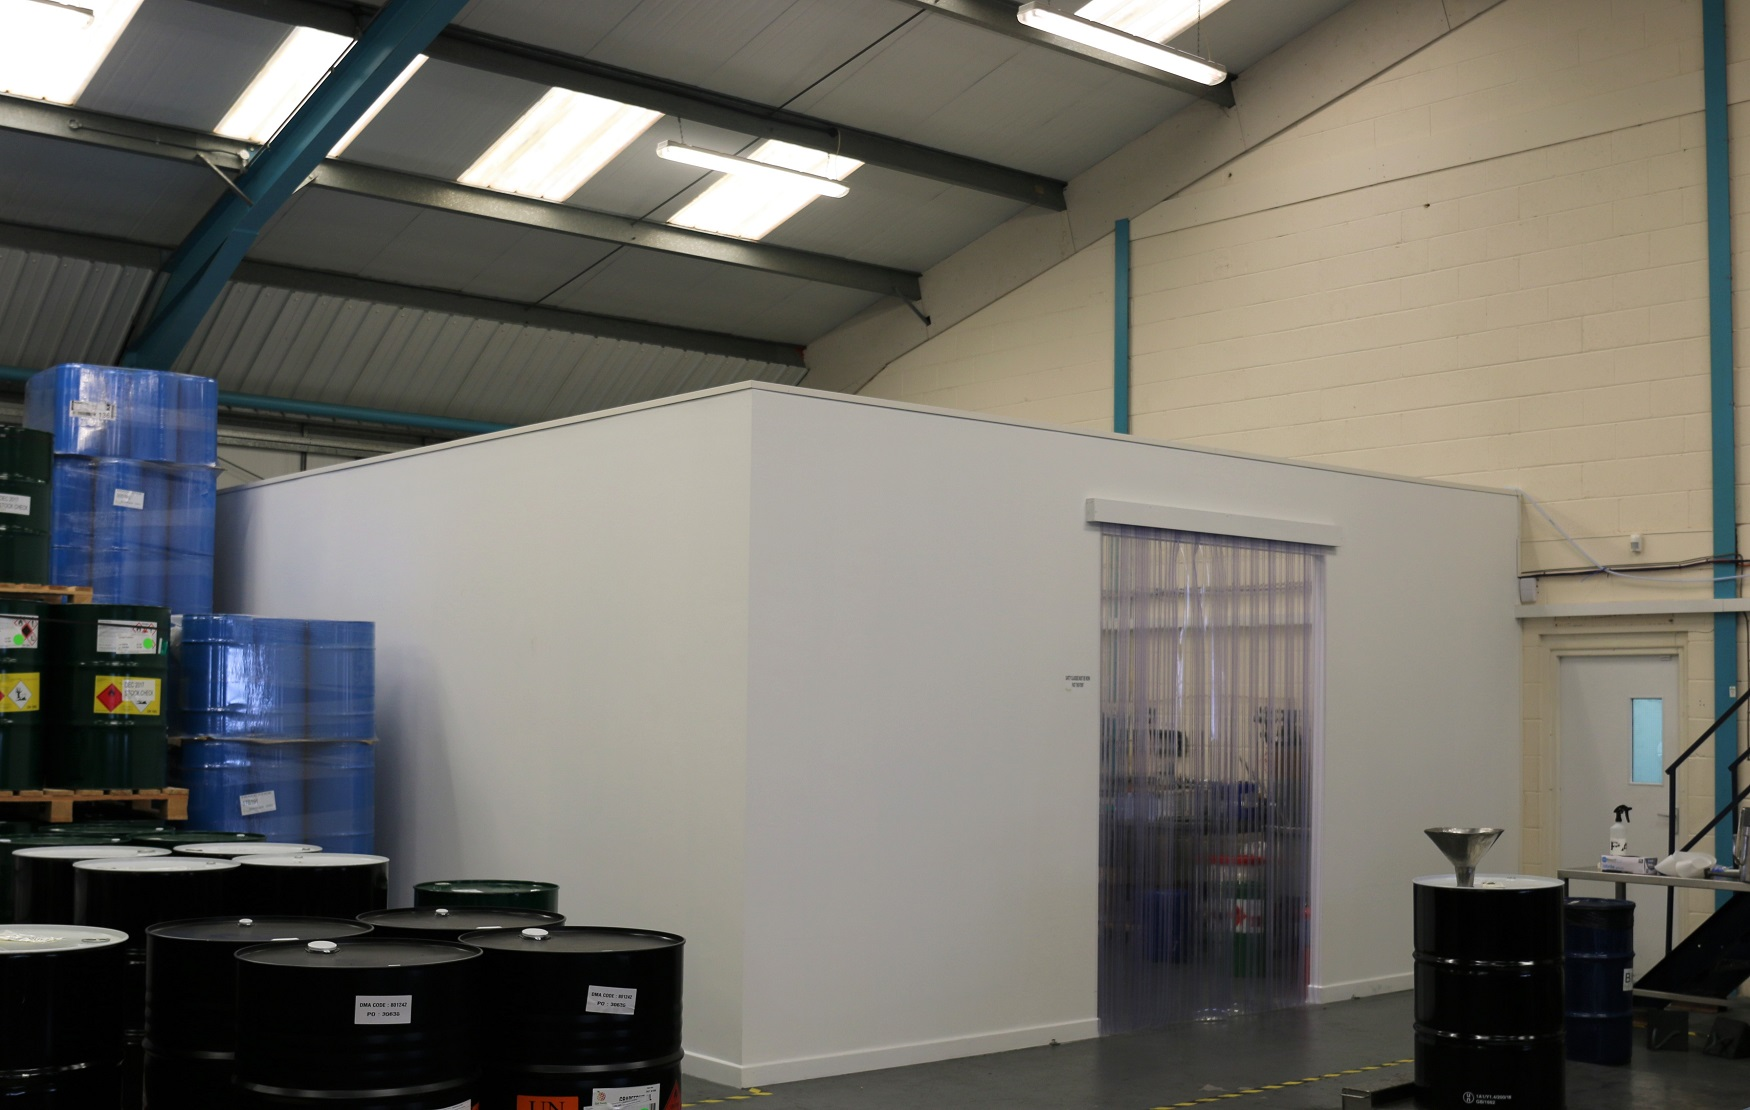 Self contained laboratory partitioned from warehouse